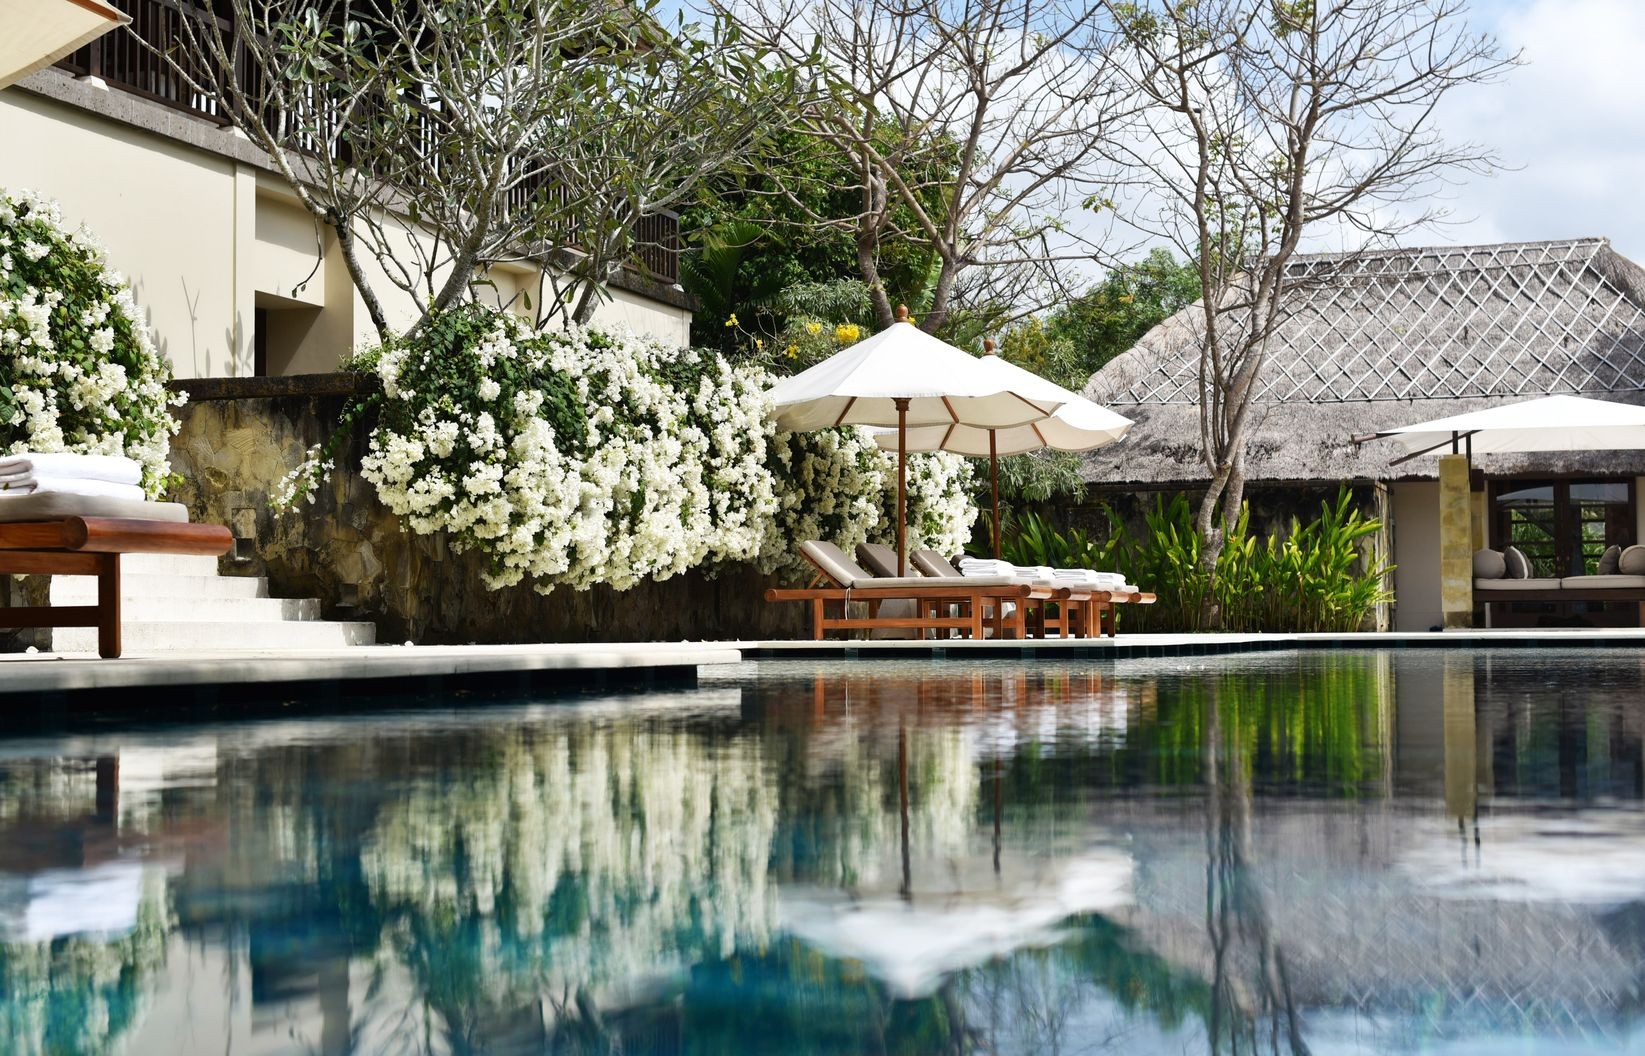 Return To Physical, Spiritual And Mental Health At This Balinese Retreat